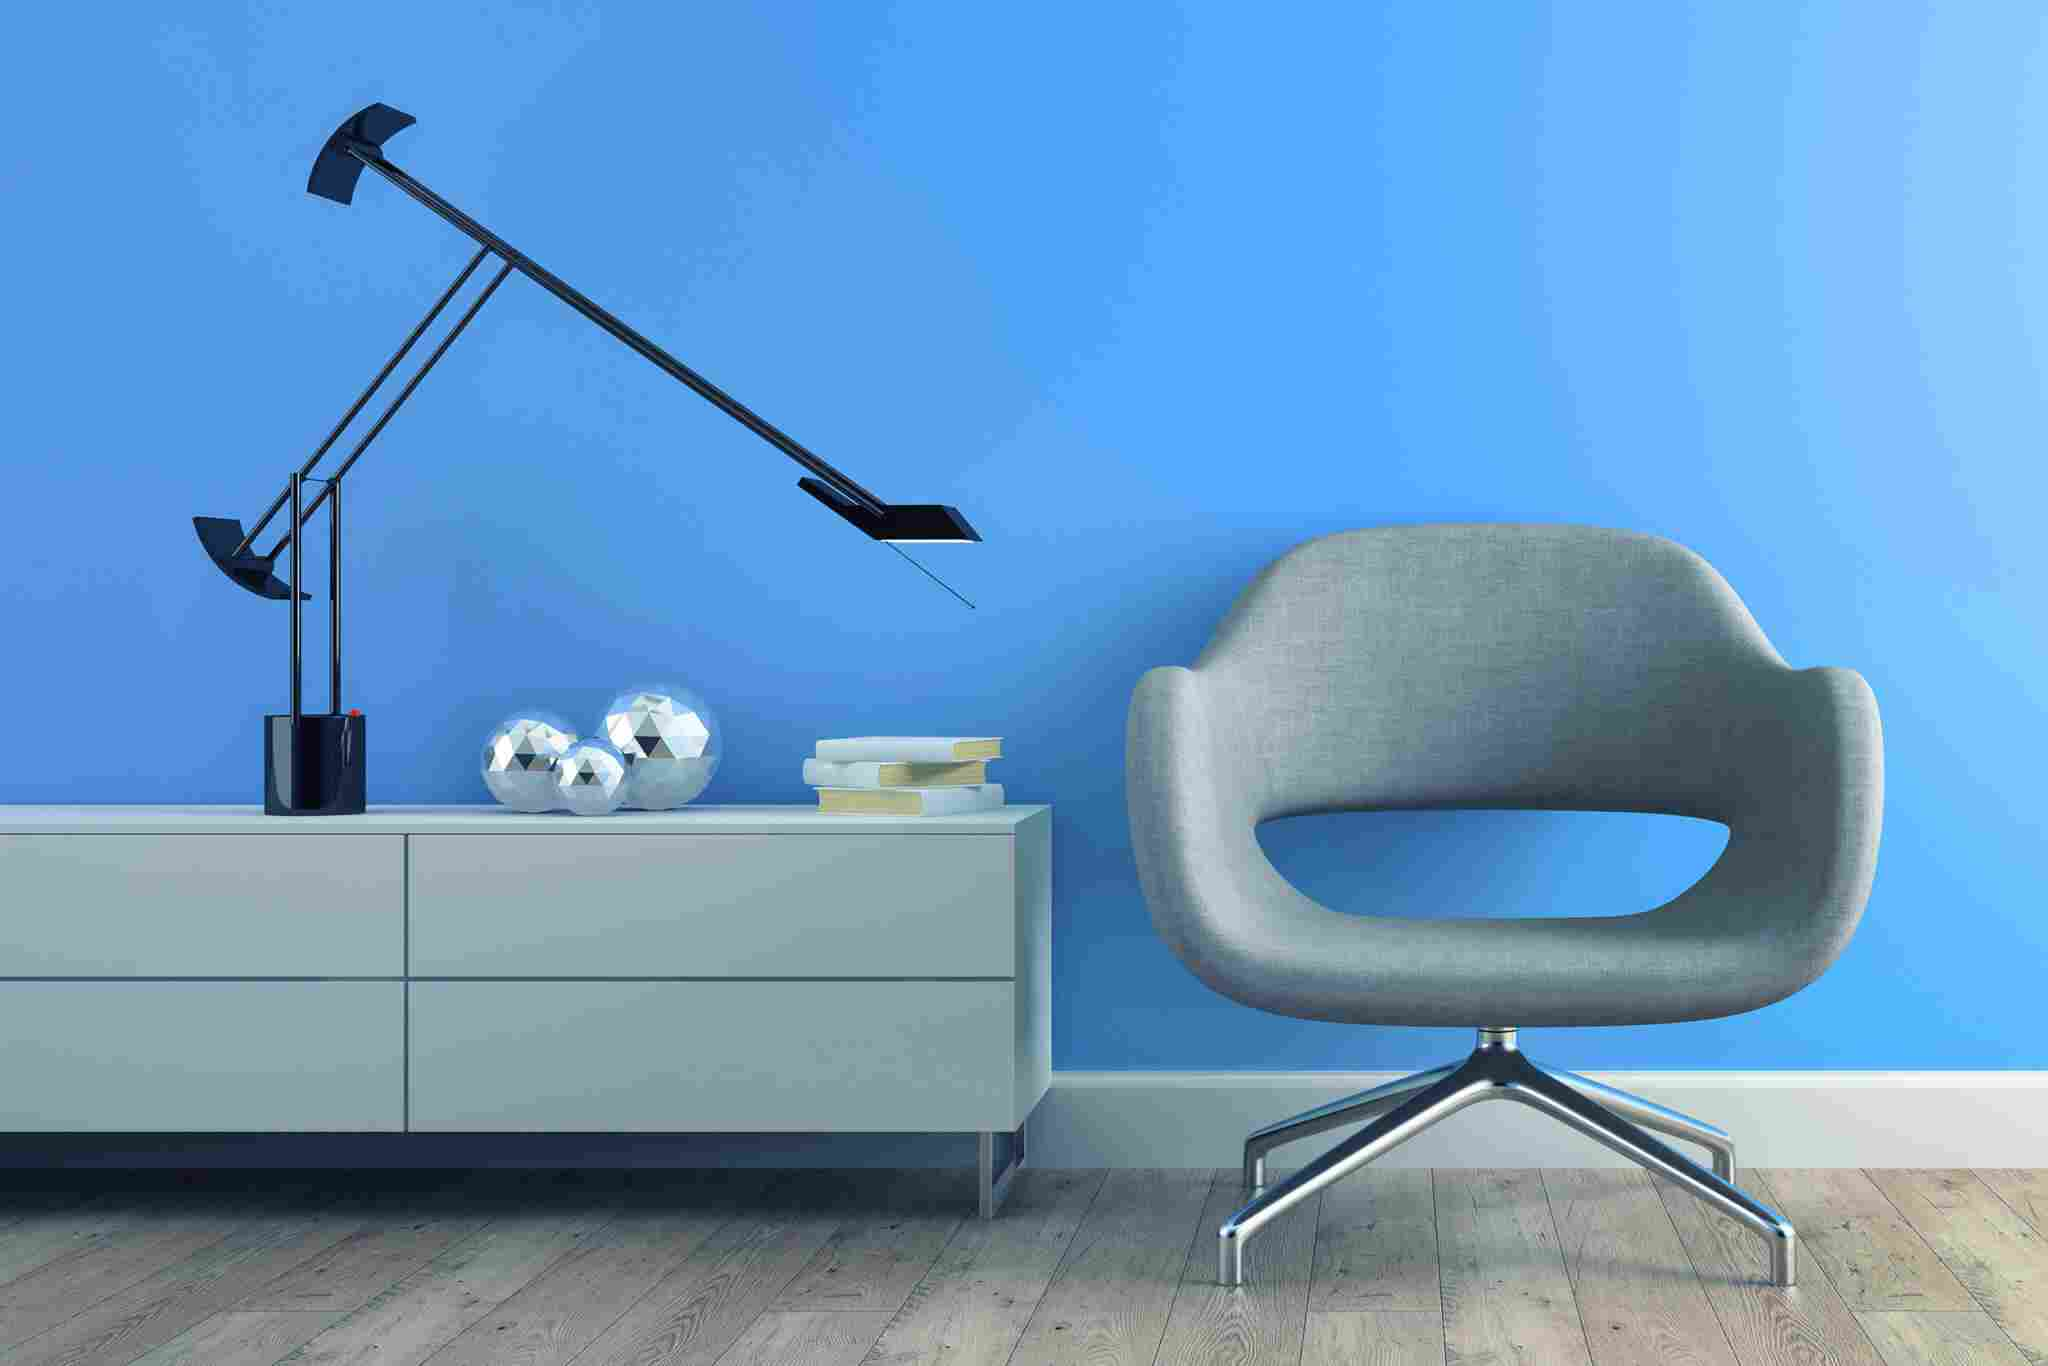 http://www.treelogy.it/wp-content/uploads/2017/05/image-chair-blue-wall.jpg